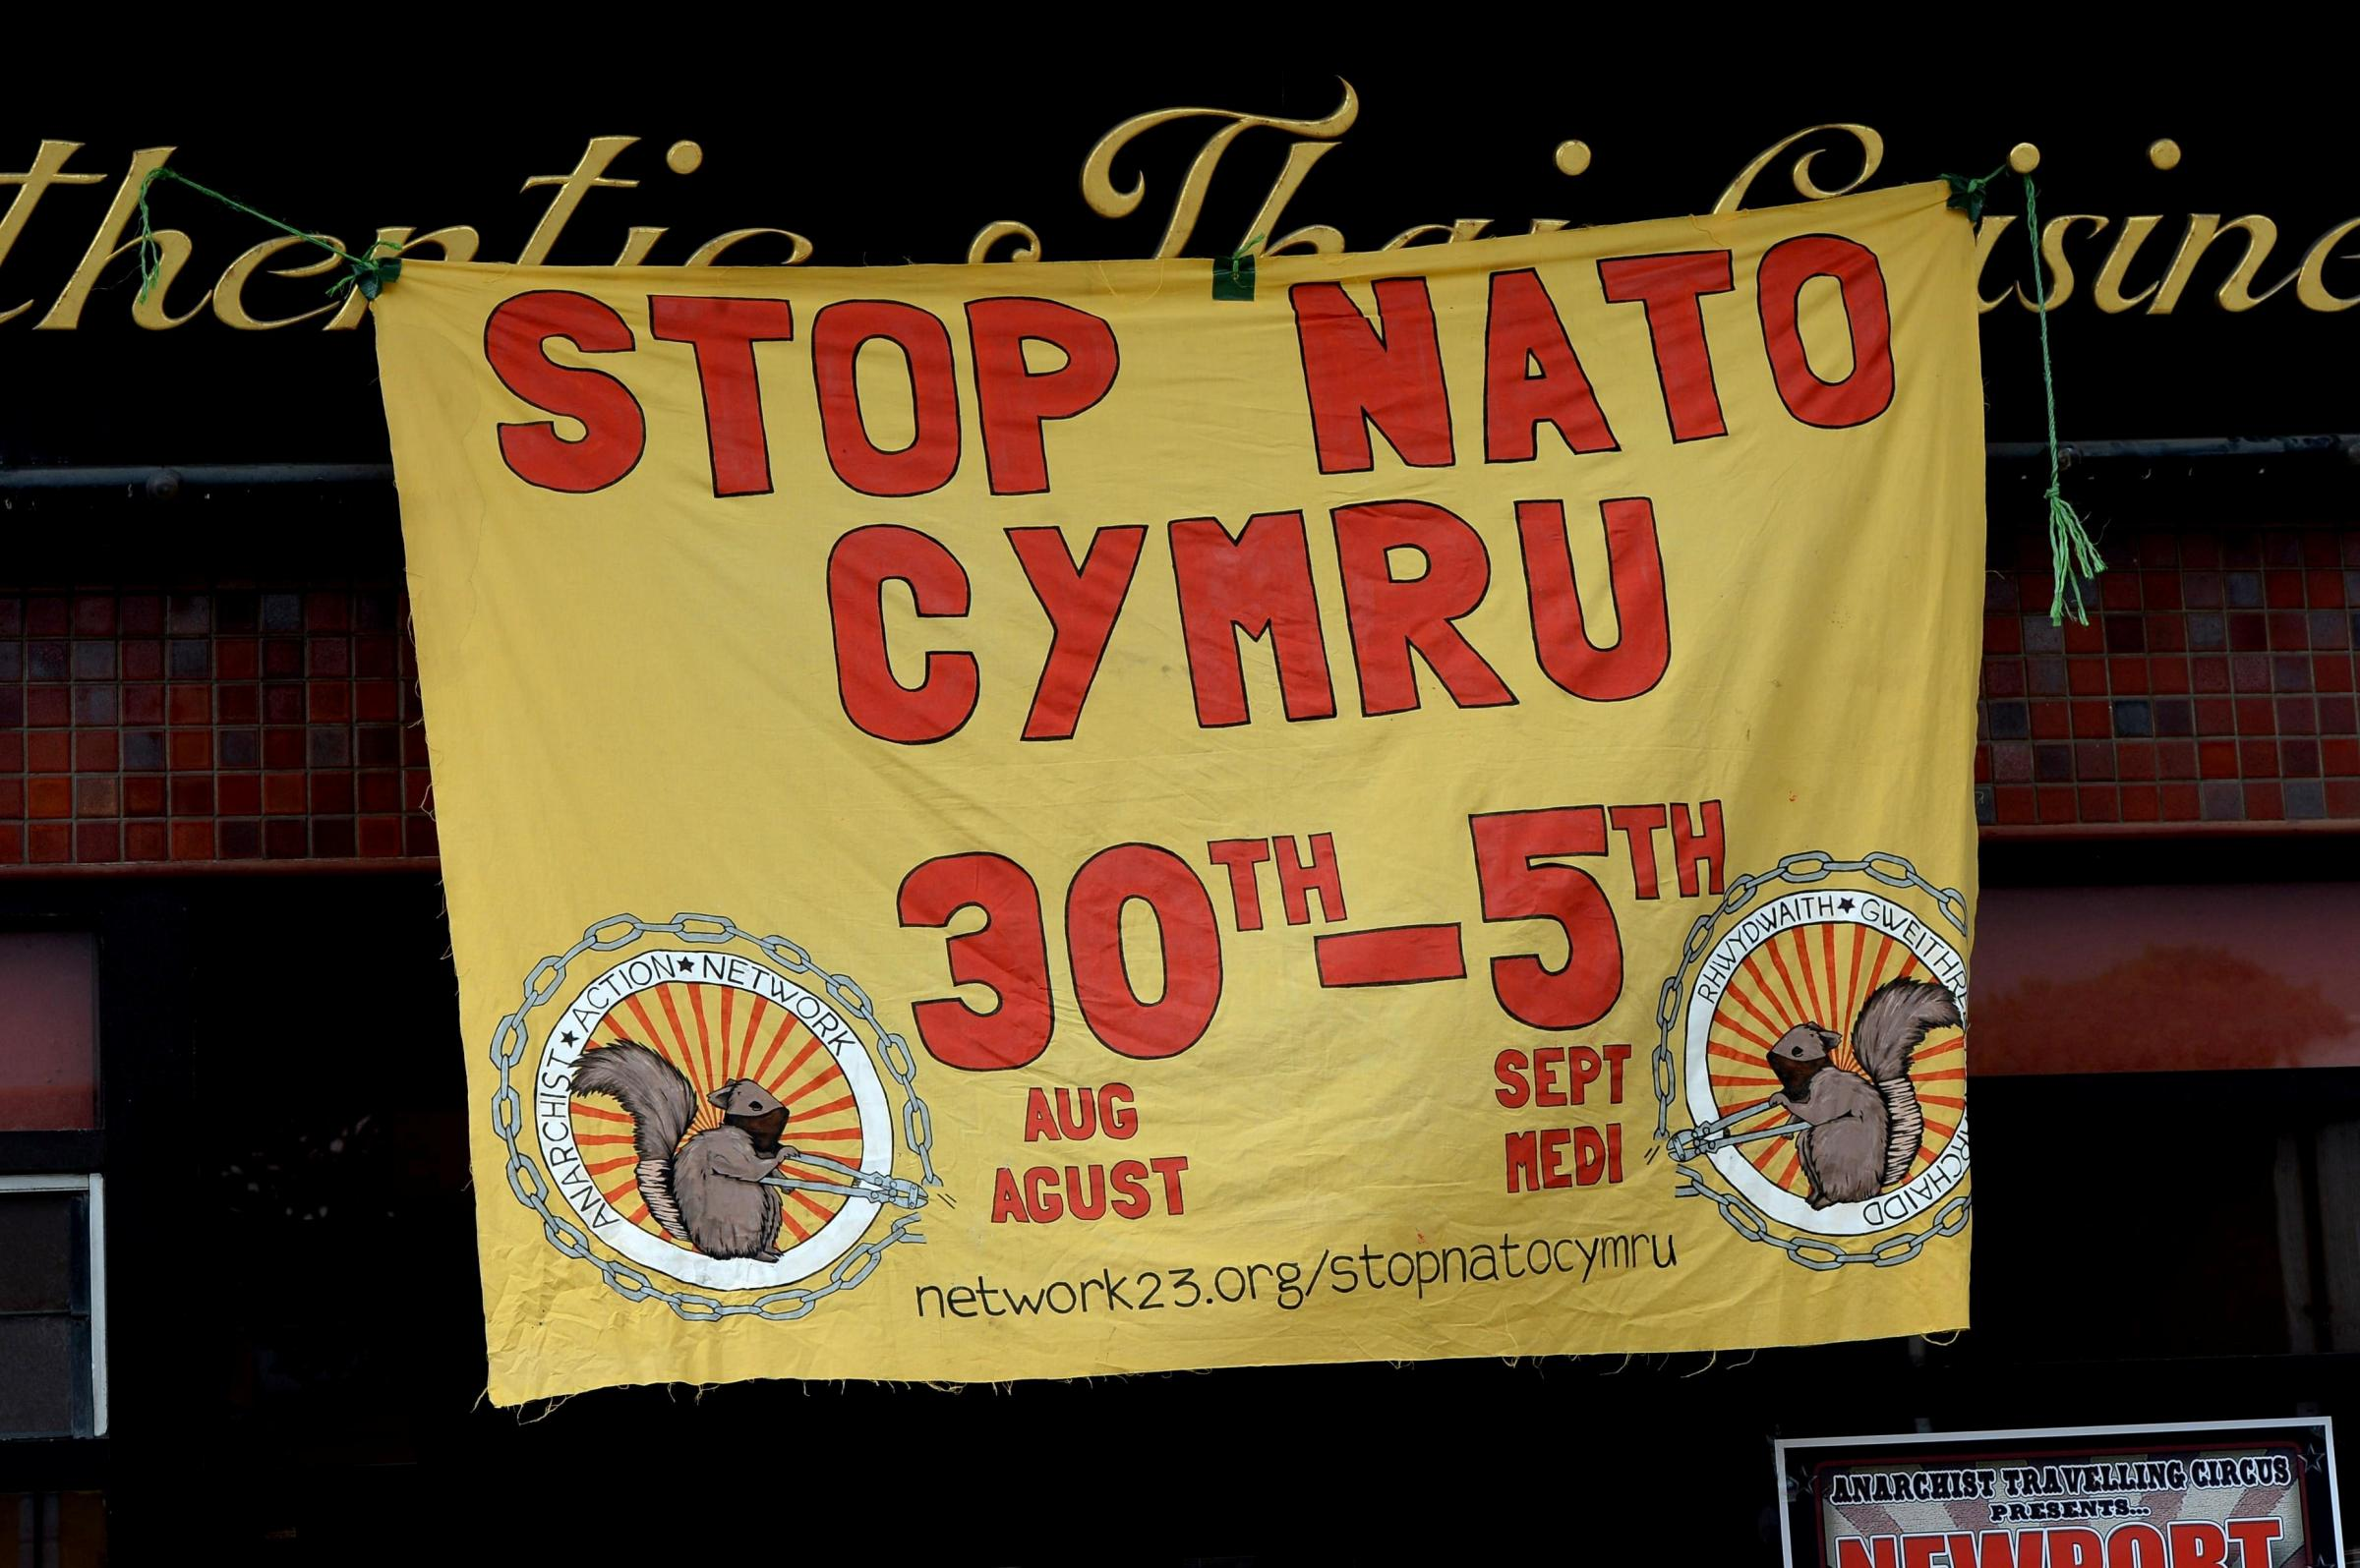 Plans emerge to disrupt Newport's Nato summit